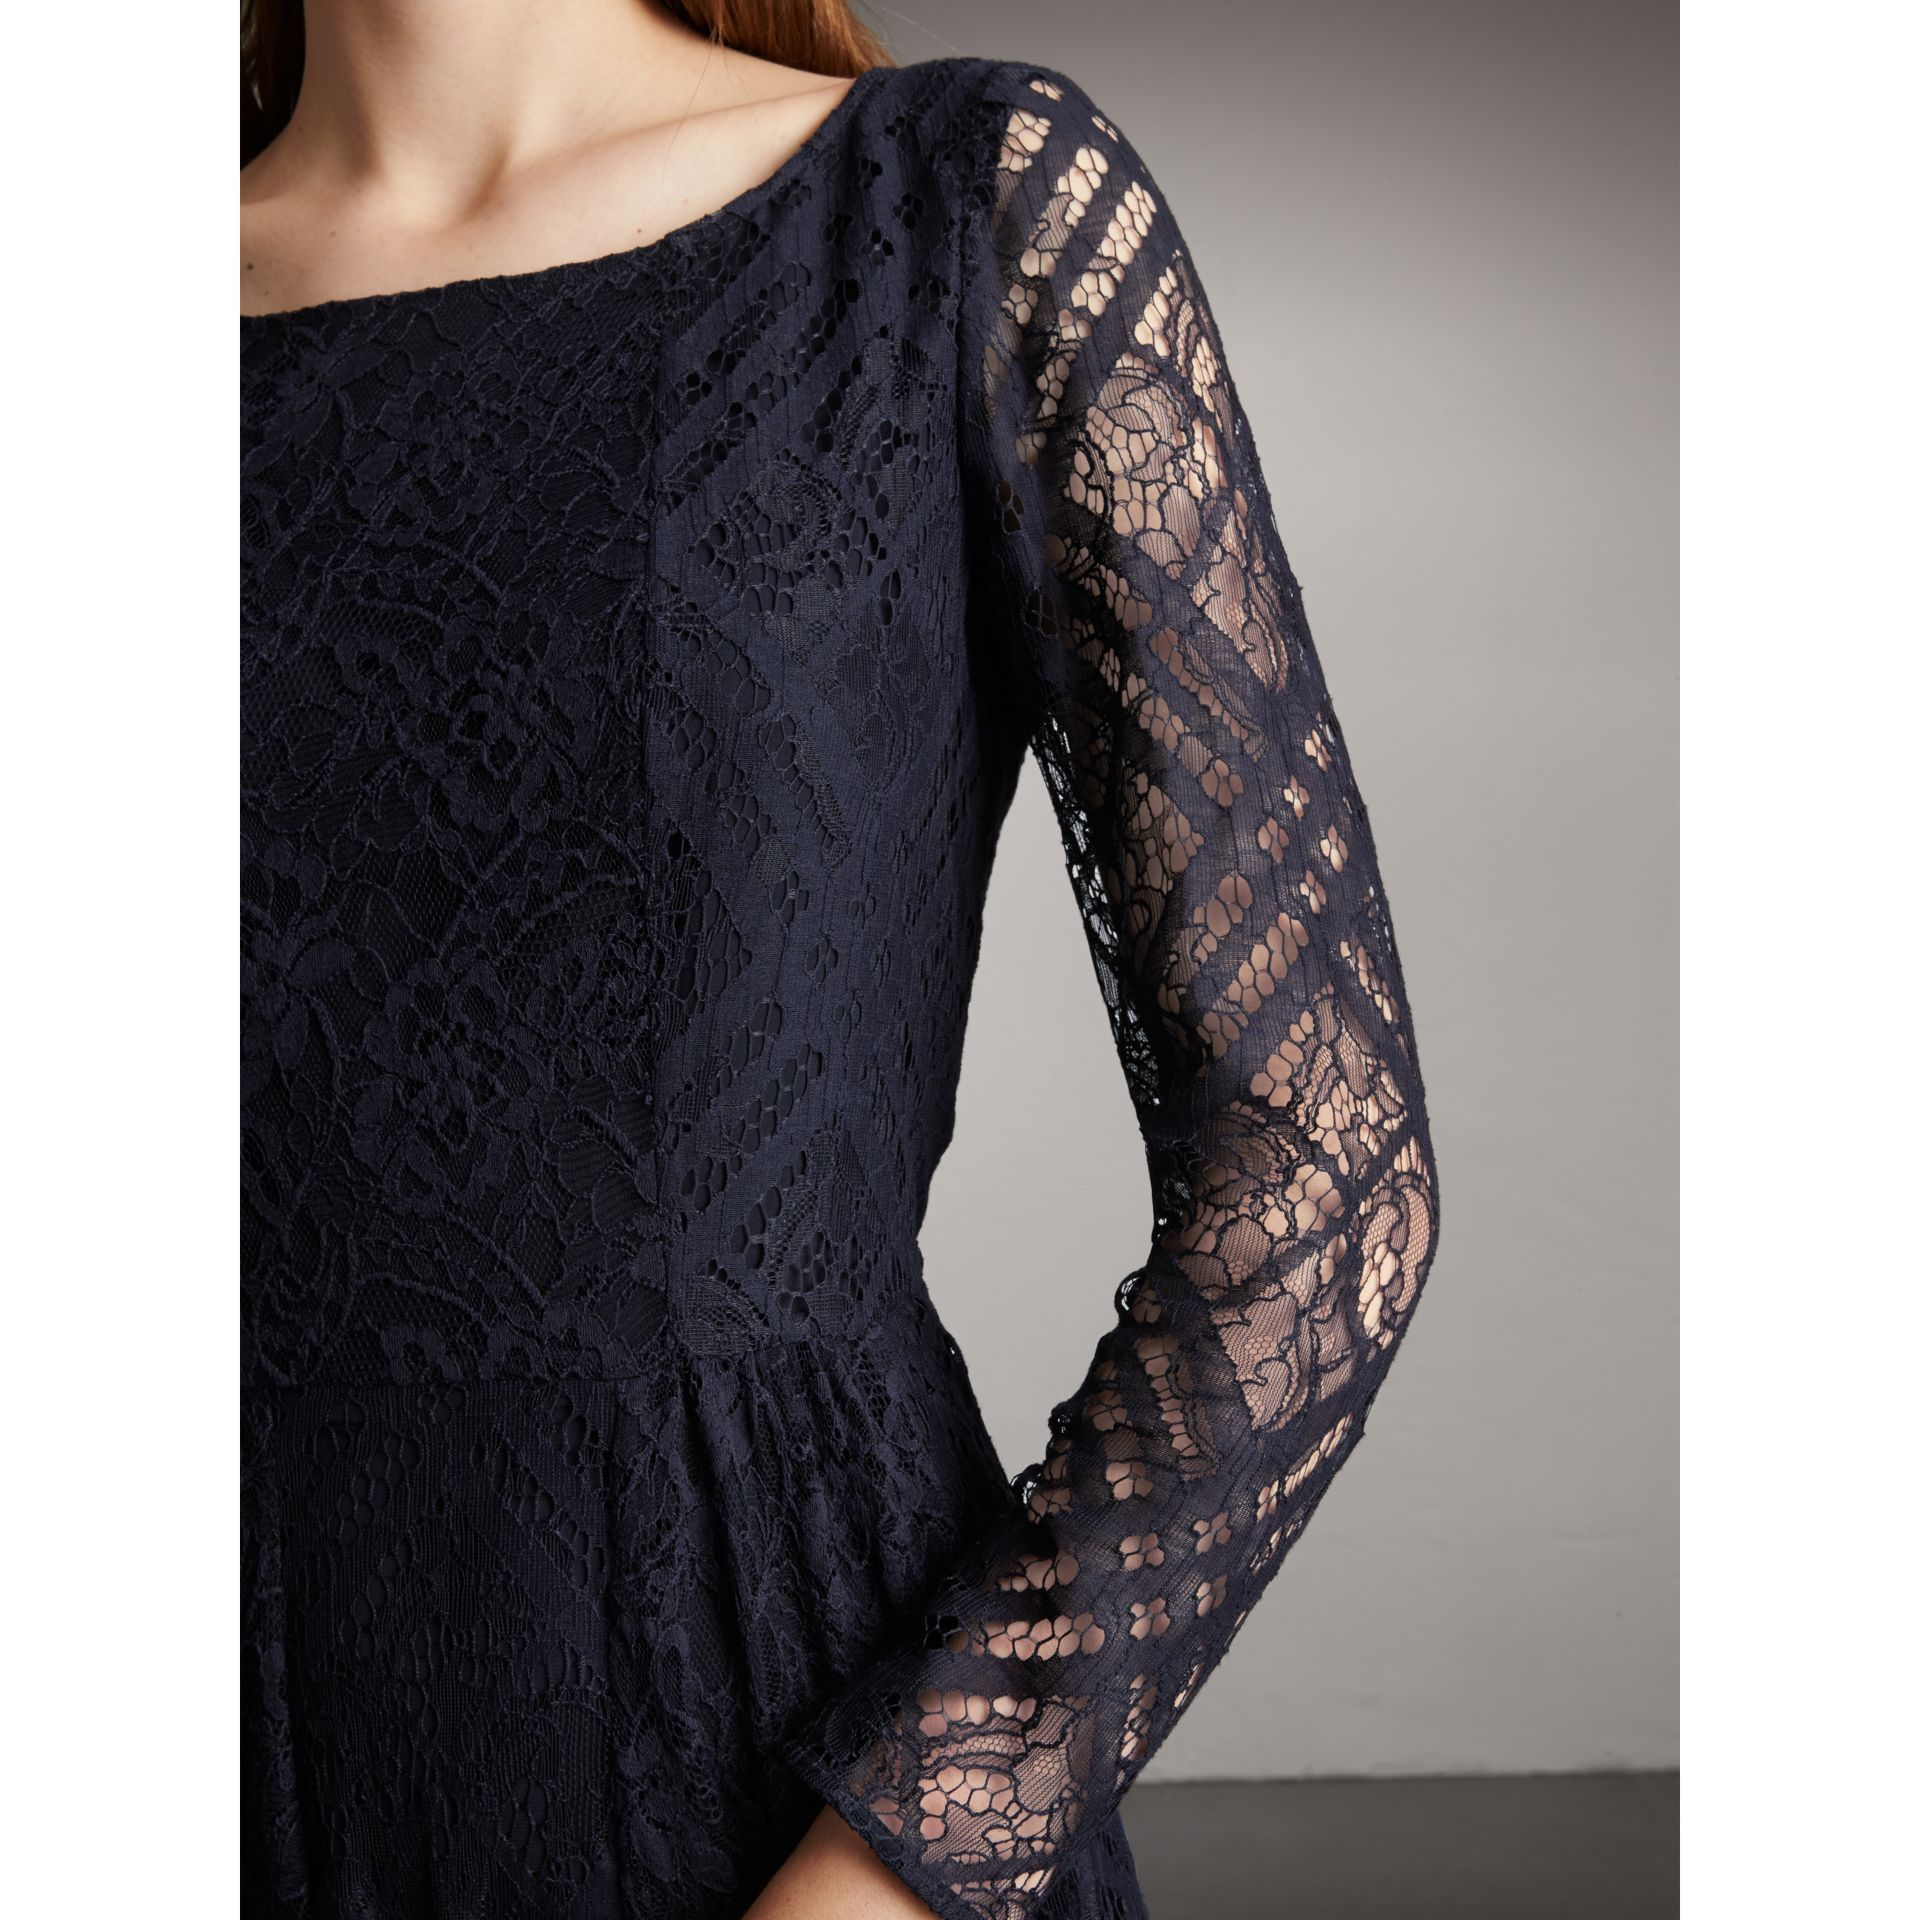 Check Lace Floor-length Dress in Navy - Women | Burberry - gallery image 2